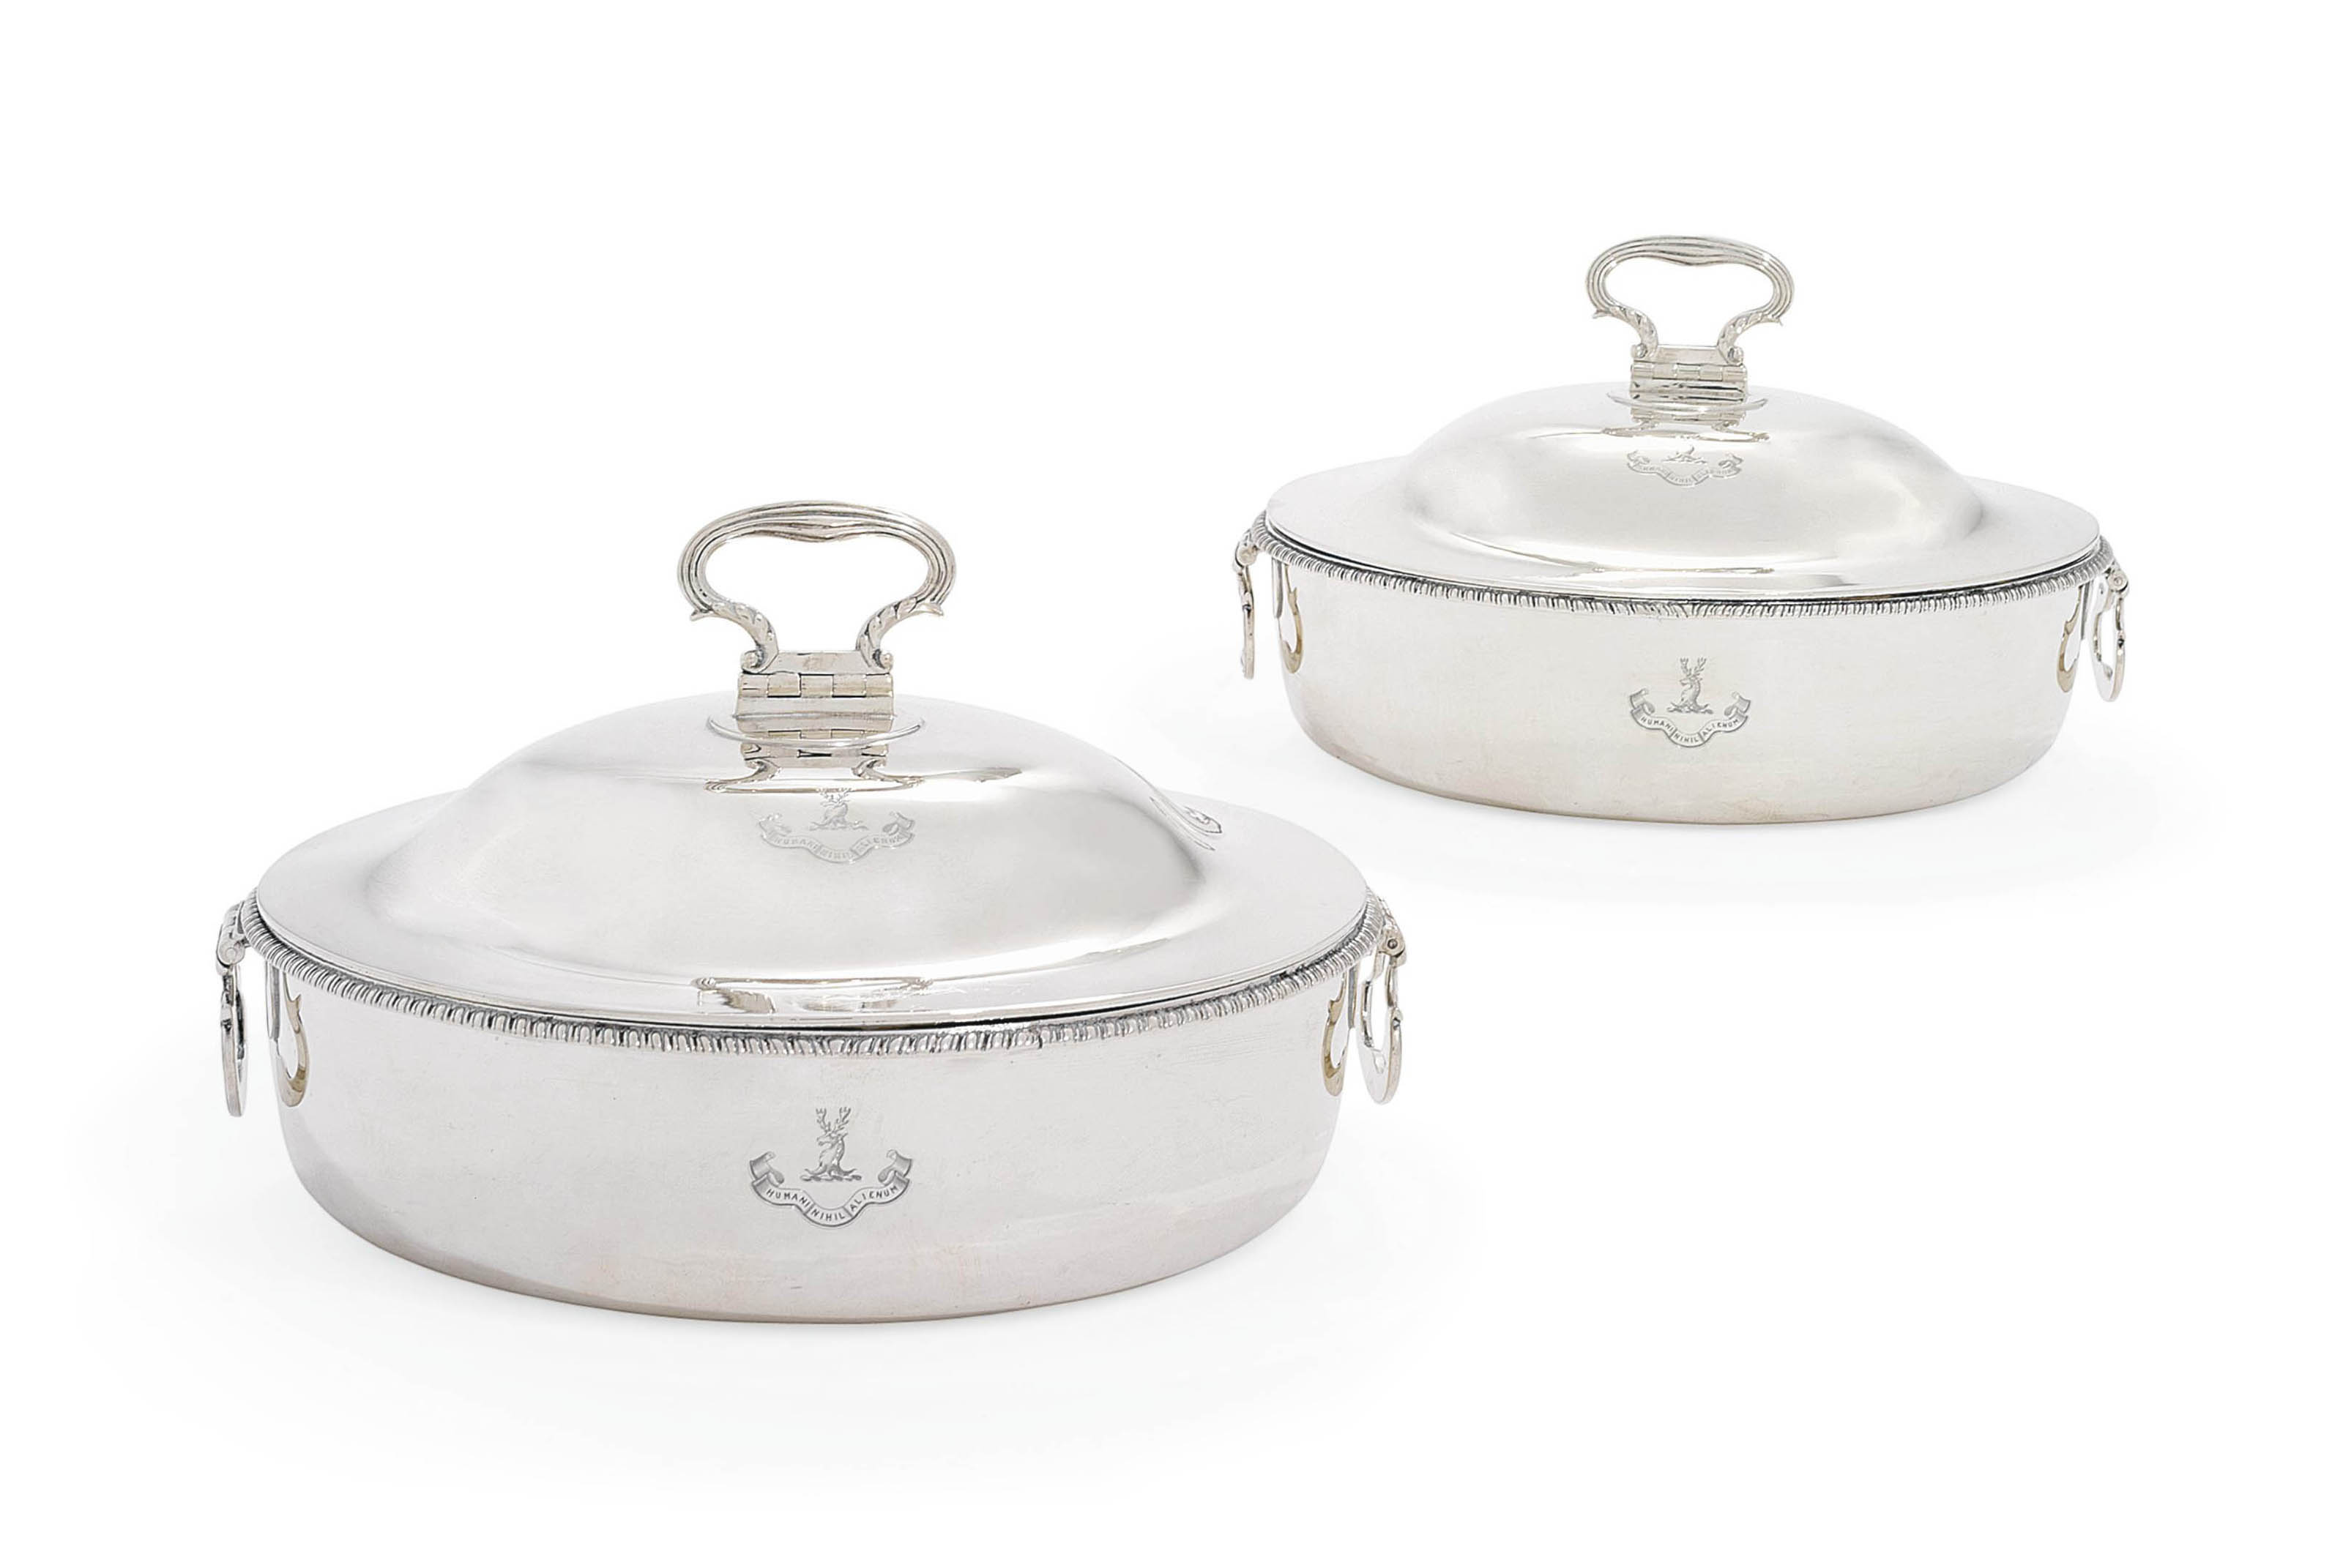 A PAIR OF GEORGE III SILVER VEGETABLE-DISHES AND COVERS